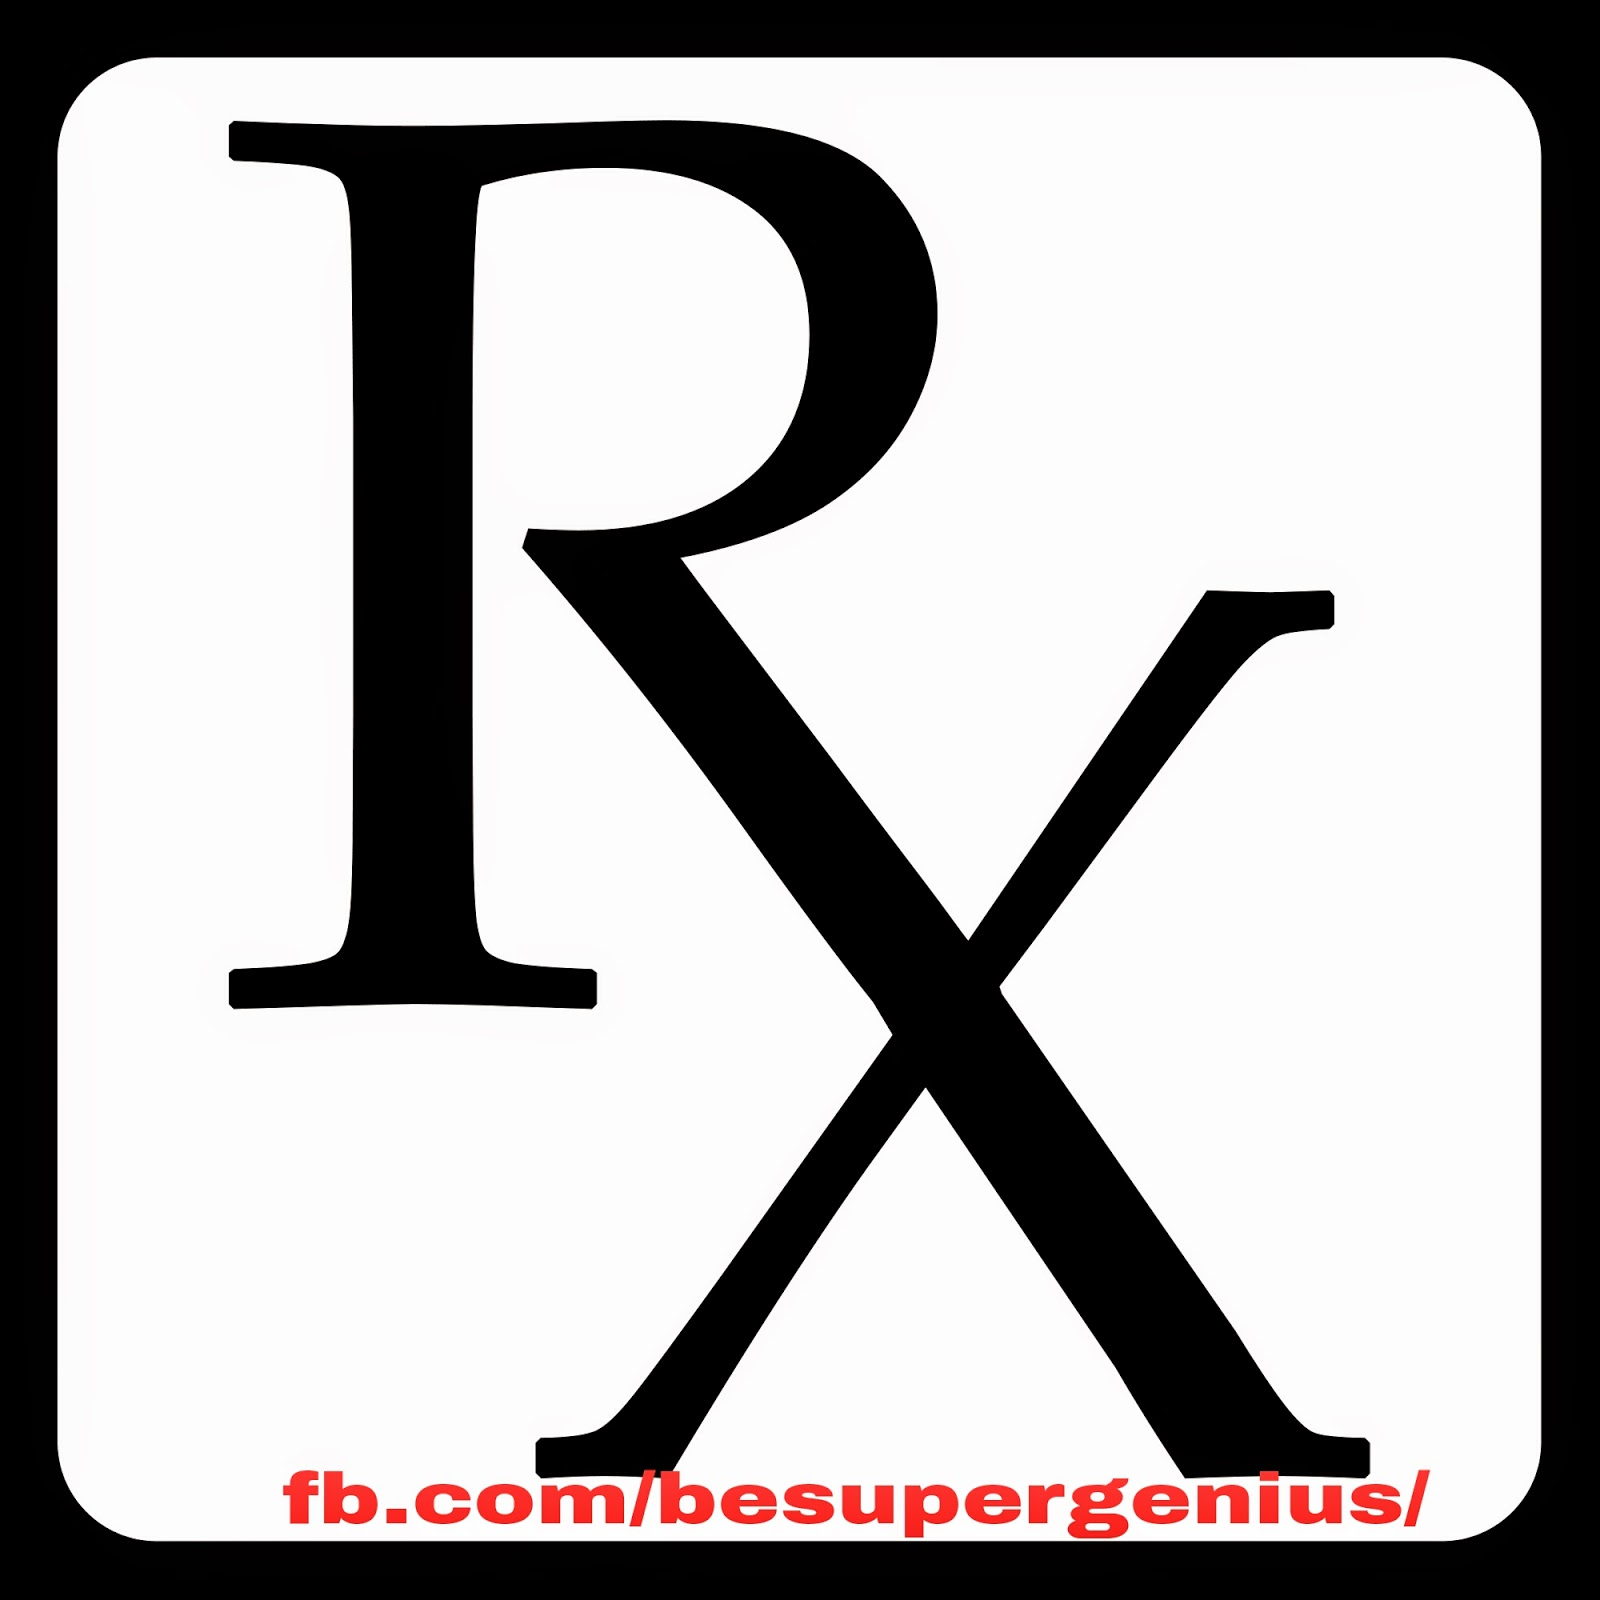 Super genius meaning of rx on medical prescription an alternative theory however is the belief that the rx symbol evolved from the eye of horus an ancient egyptian symbol associated with healing powers biocorpaavc Images